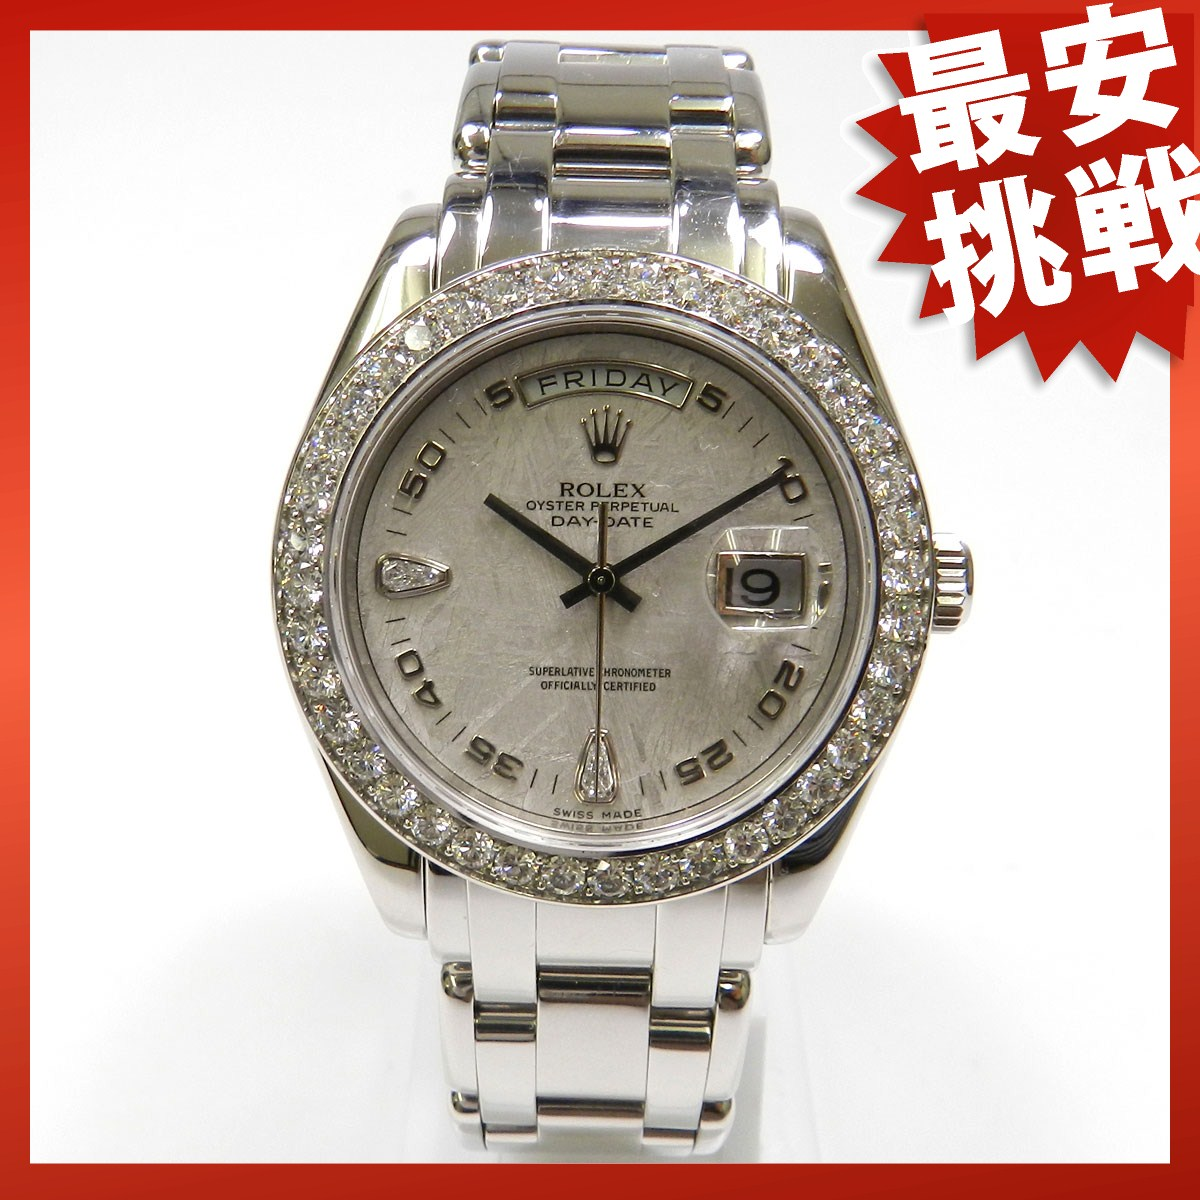 ROLEX 18946 2BR Oyster Perpetual Day-Date Watch